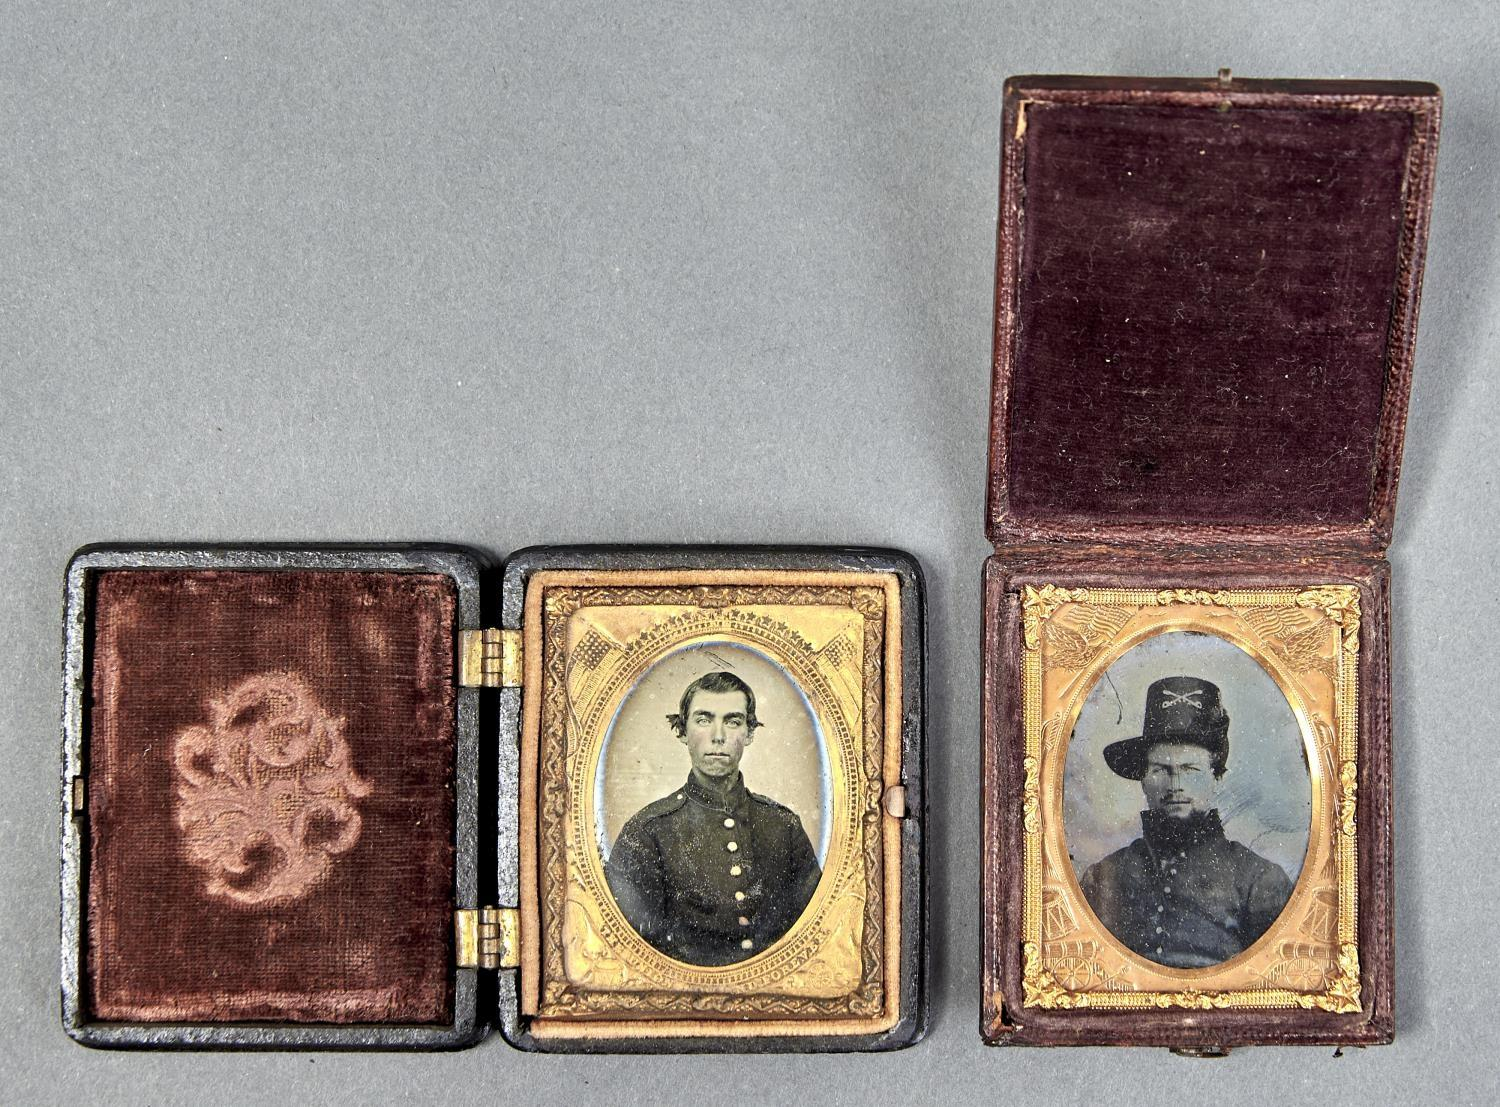 19TH C PHOTOGRAPHY. TWO AMERICAN NINTH PLATE AMBROTYPES, C1860 OF CIVIL WAR SOLDIERS, IN UNIFORM, IN